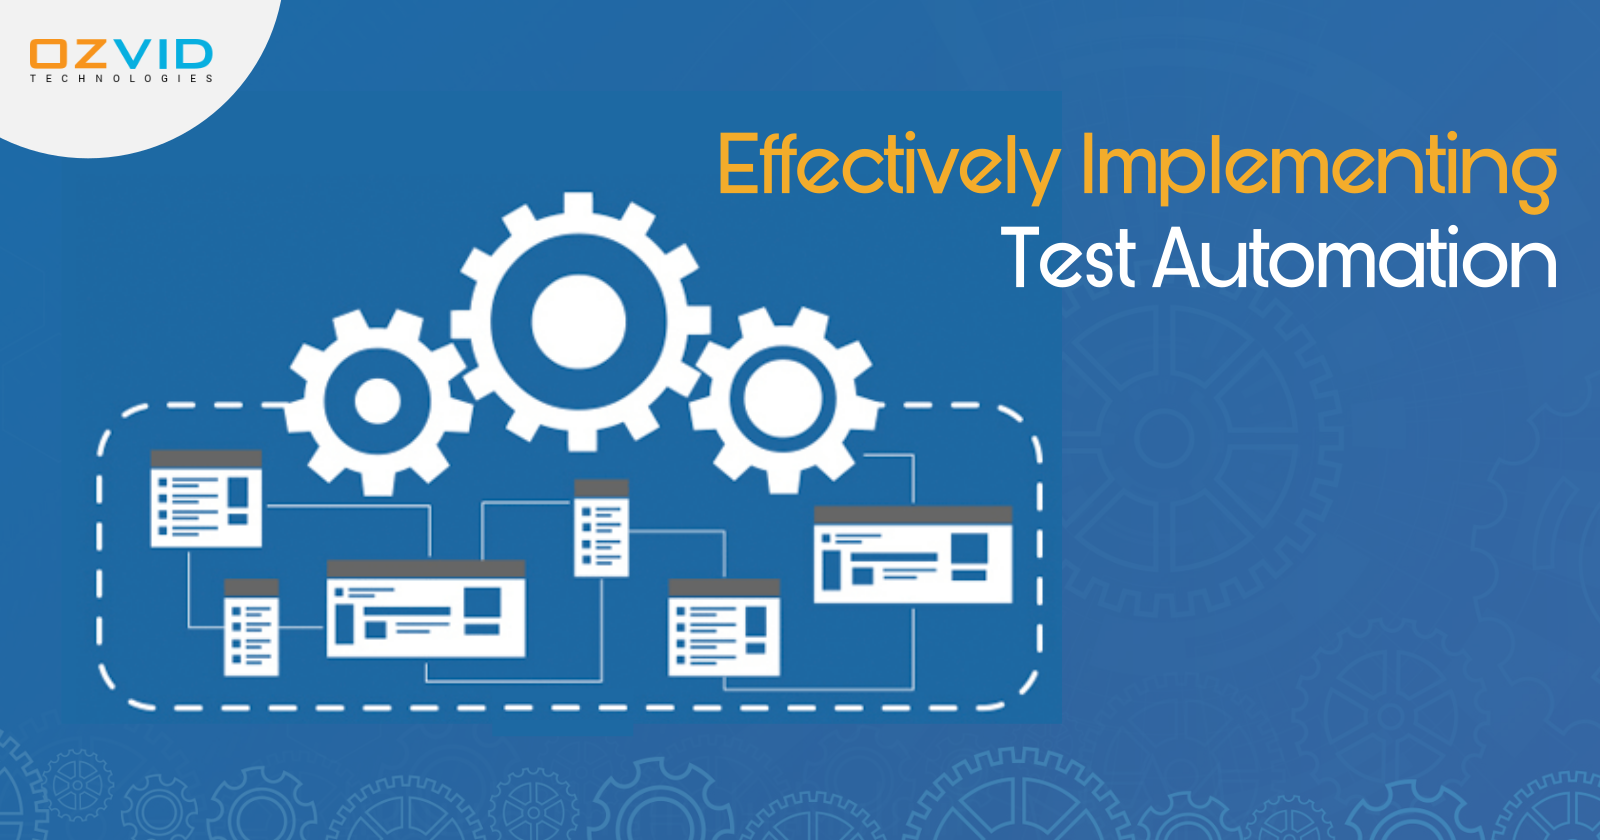 Effectively Implementing Test Automation to Speed the Testing Process